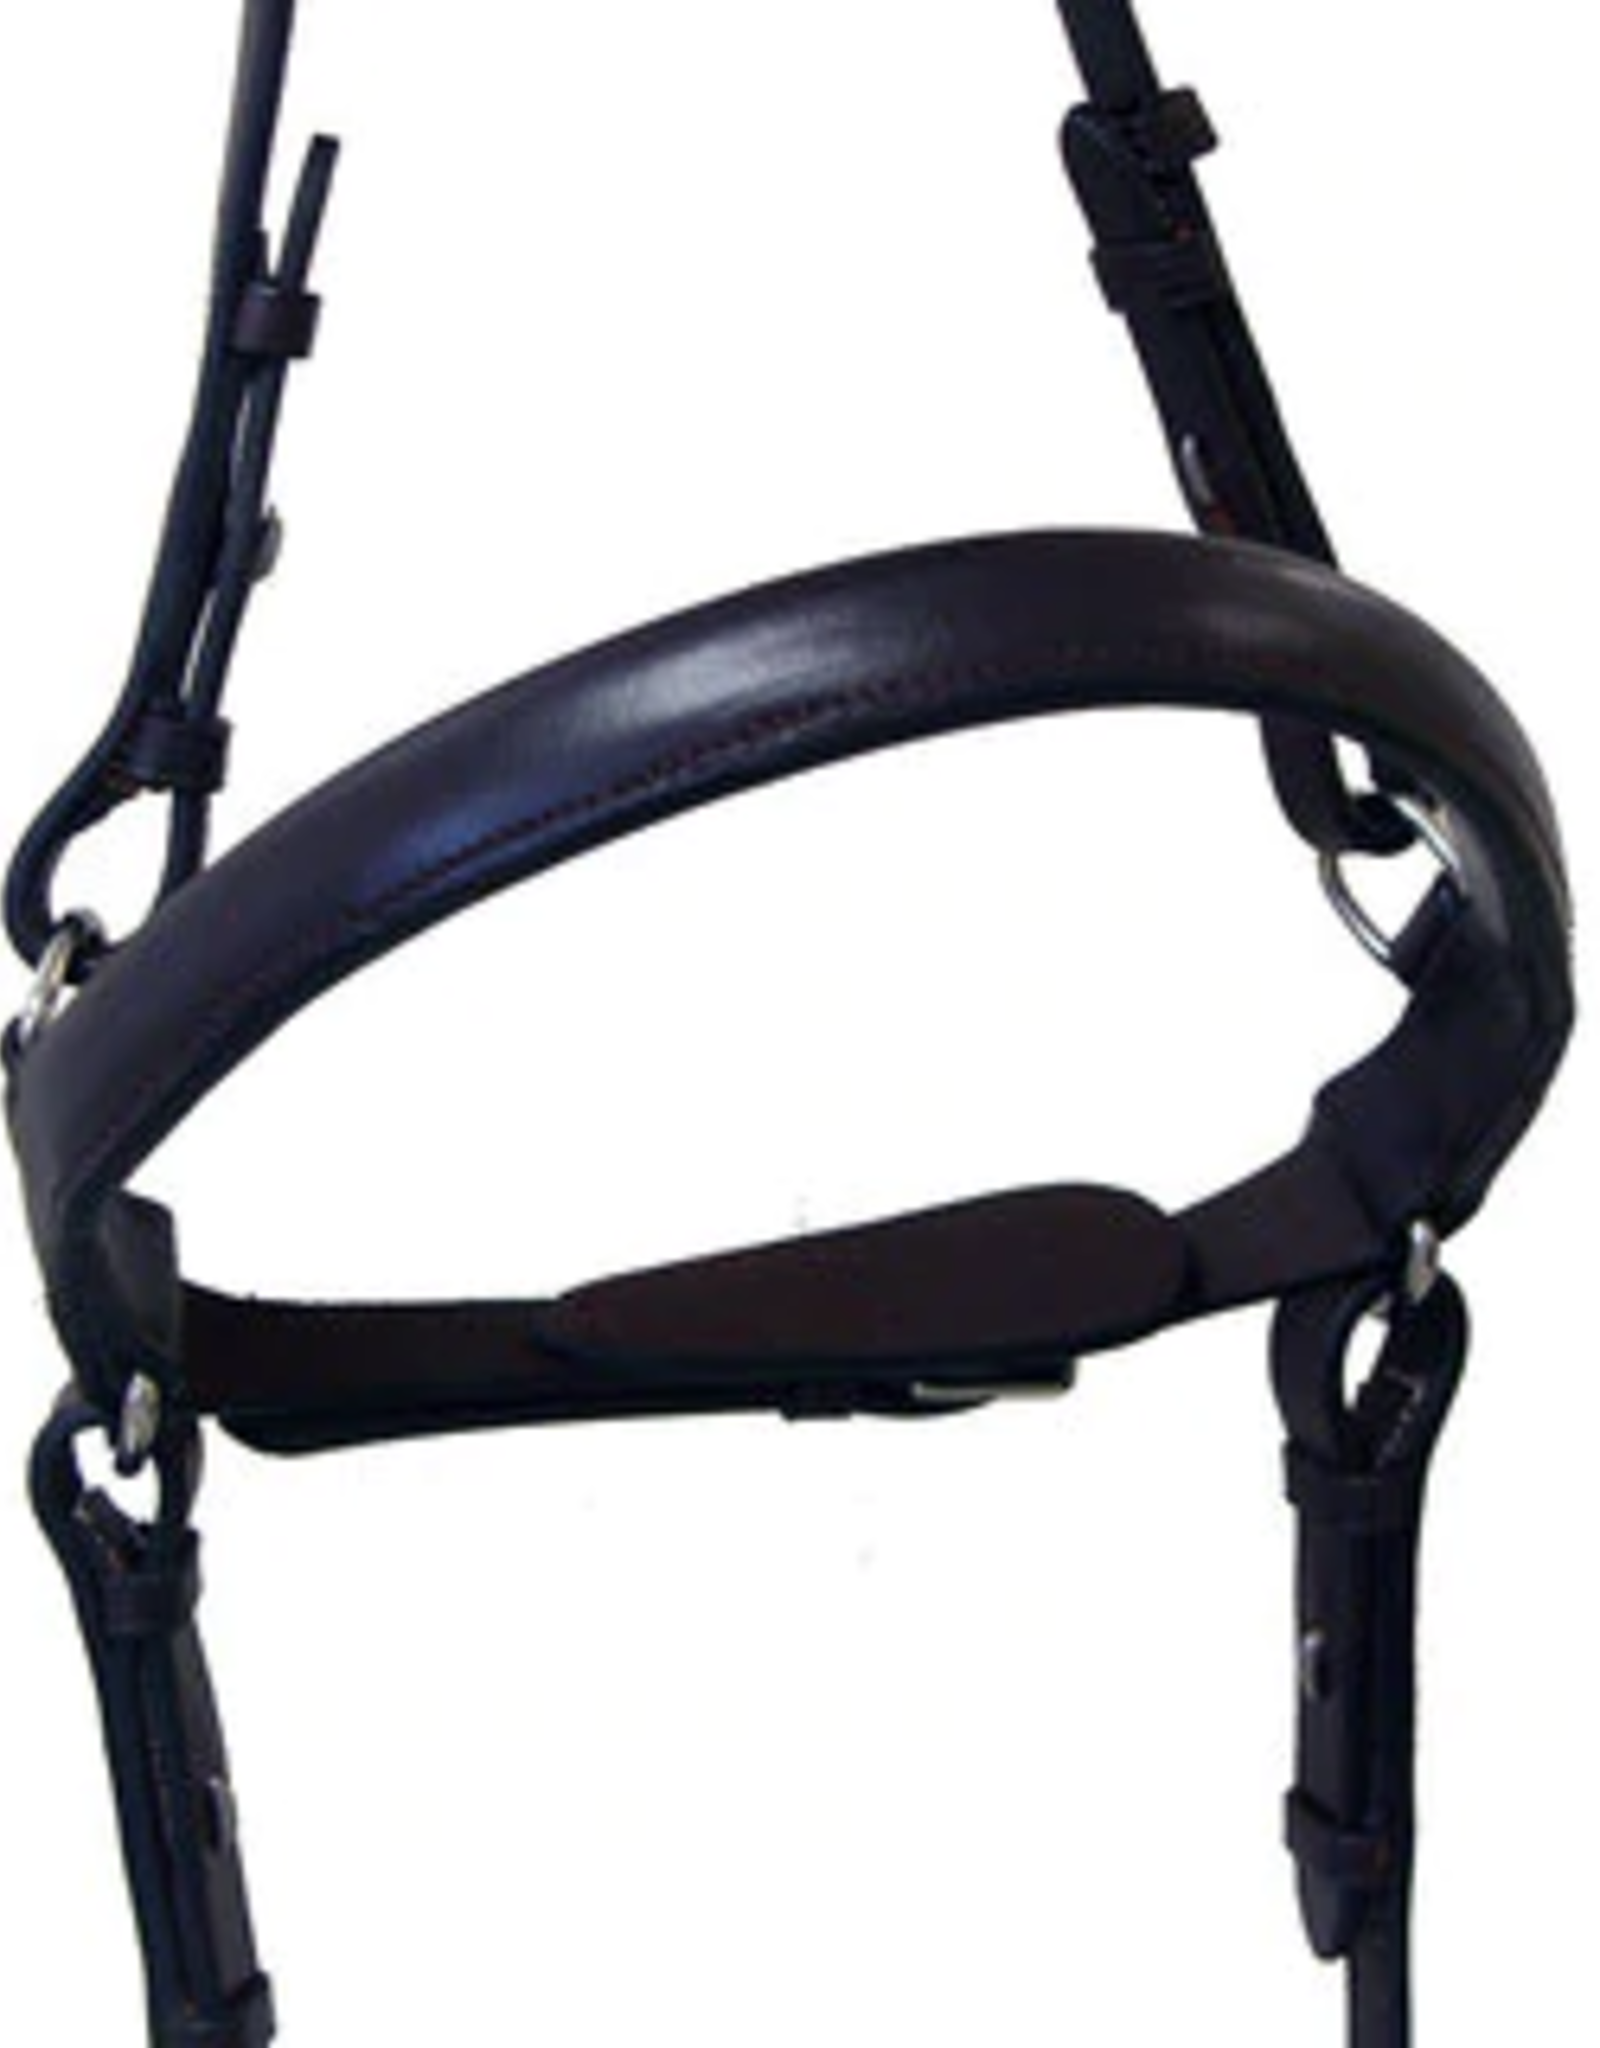 ELITE LEATHER HACKAMORE